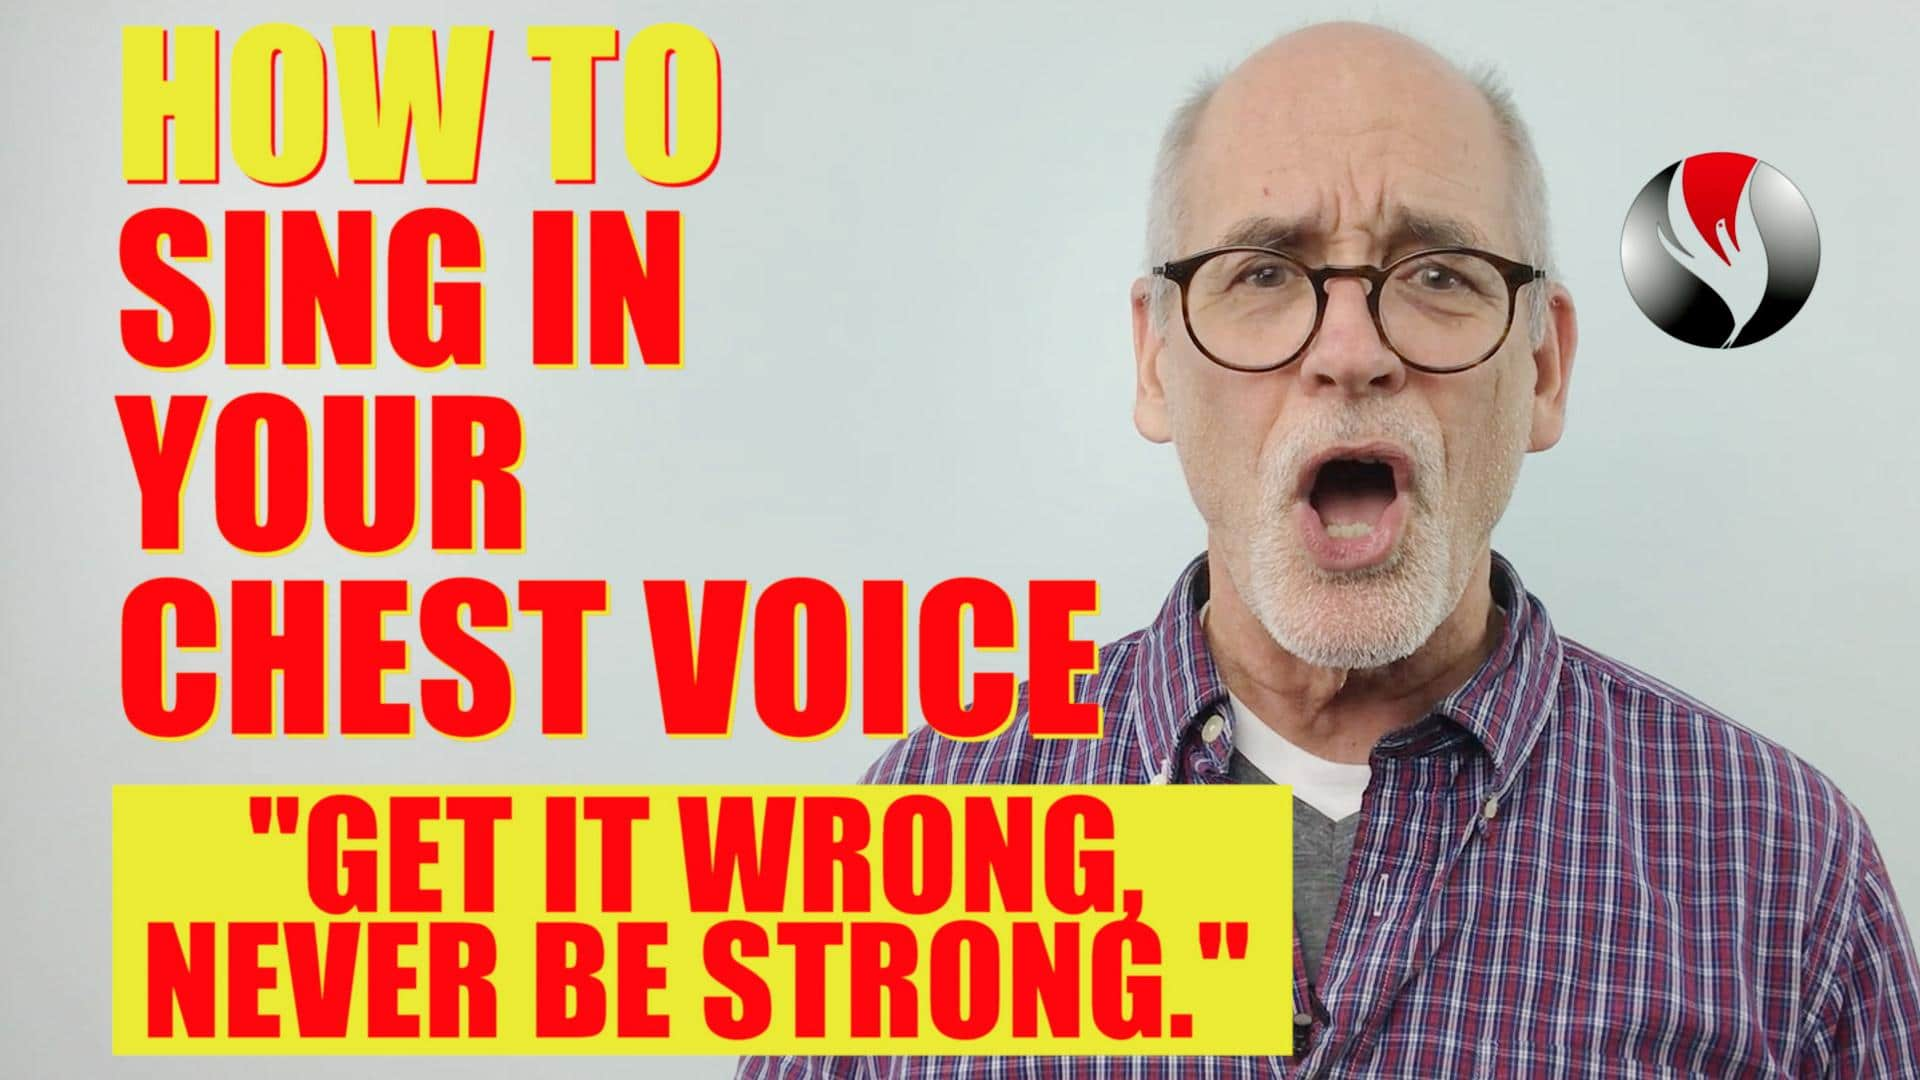 How to Sing in Your Chest Voice – Get it Wrong Never be Strong